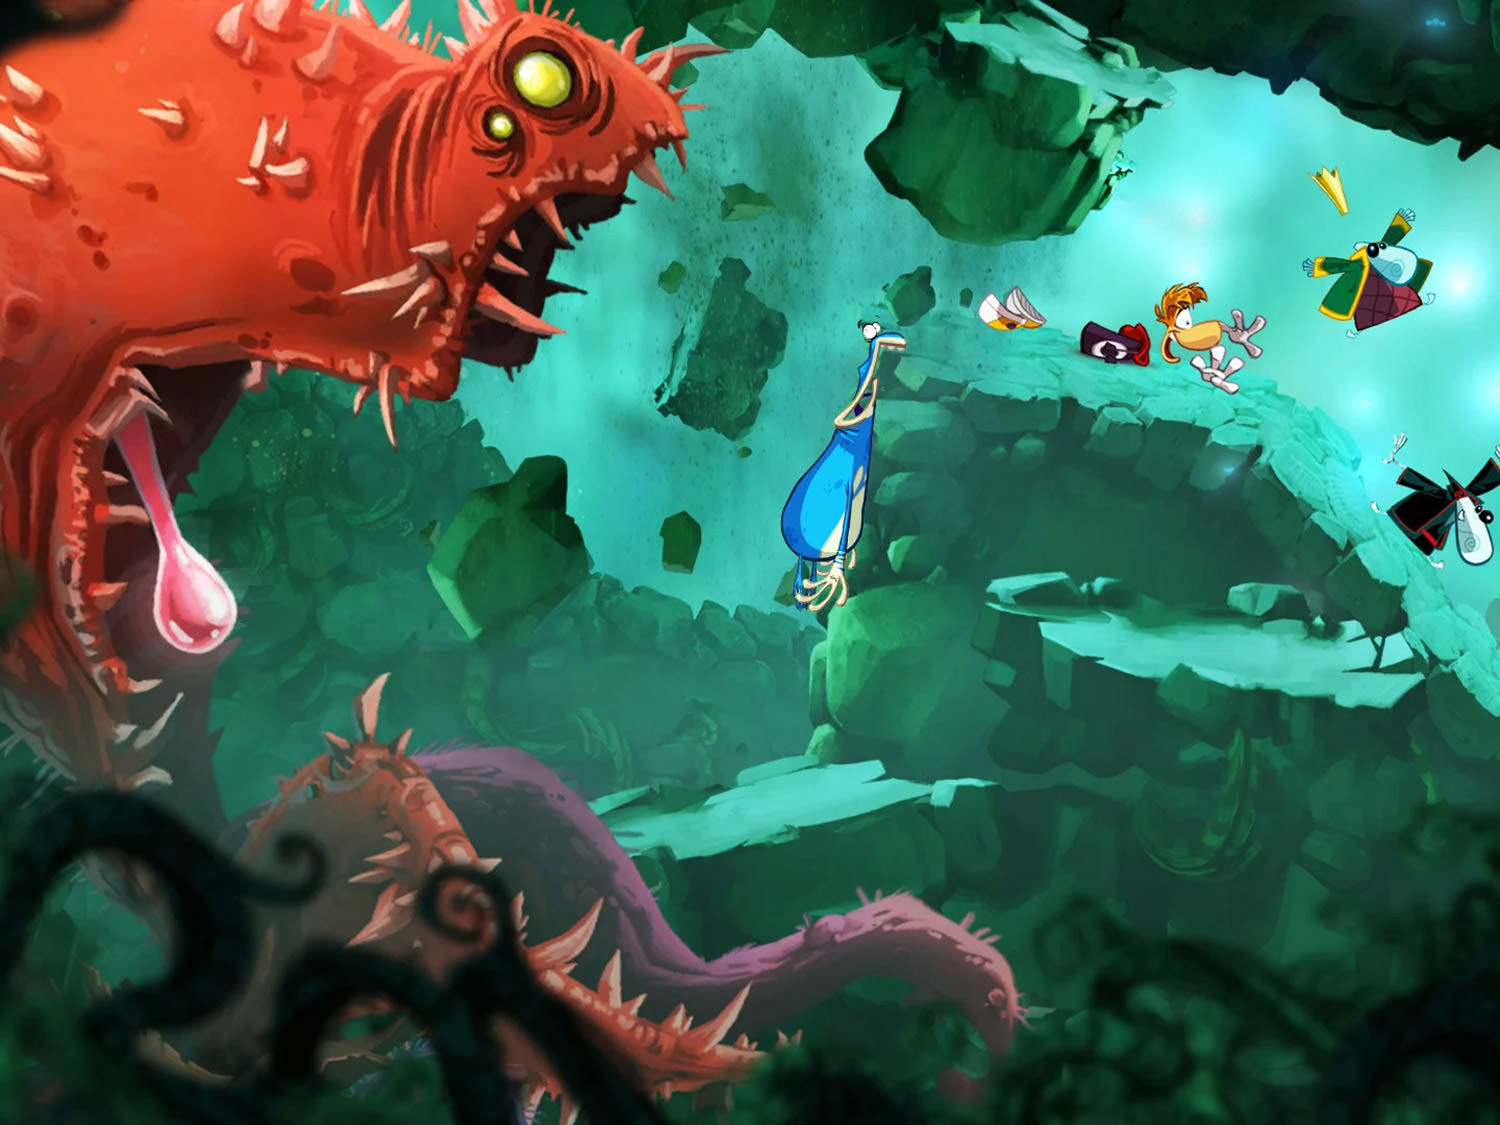 Rayman Origins Game Screen 3 wallpaper